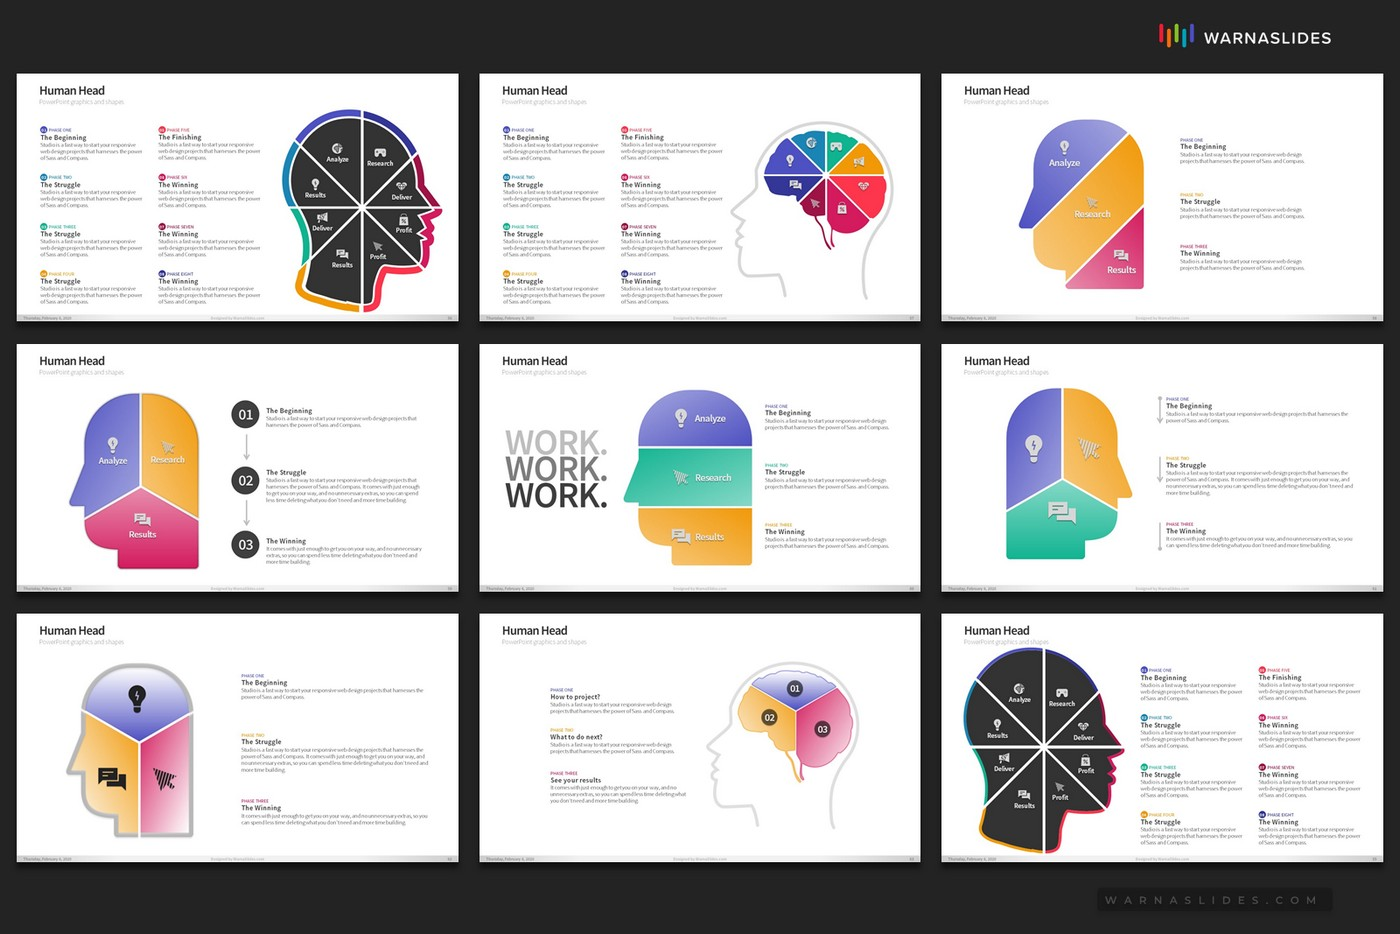 Human-Head-Ideas-Brainstorm-PowerPoint-Template-for-Business-Pitch-Deck-Professional-Creative-PowerPoint-Icons-013